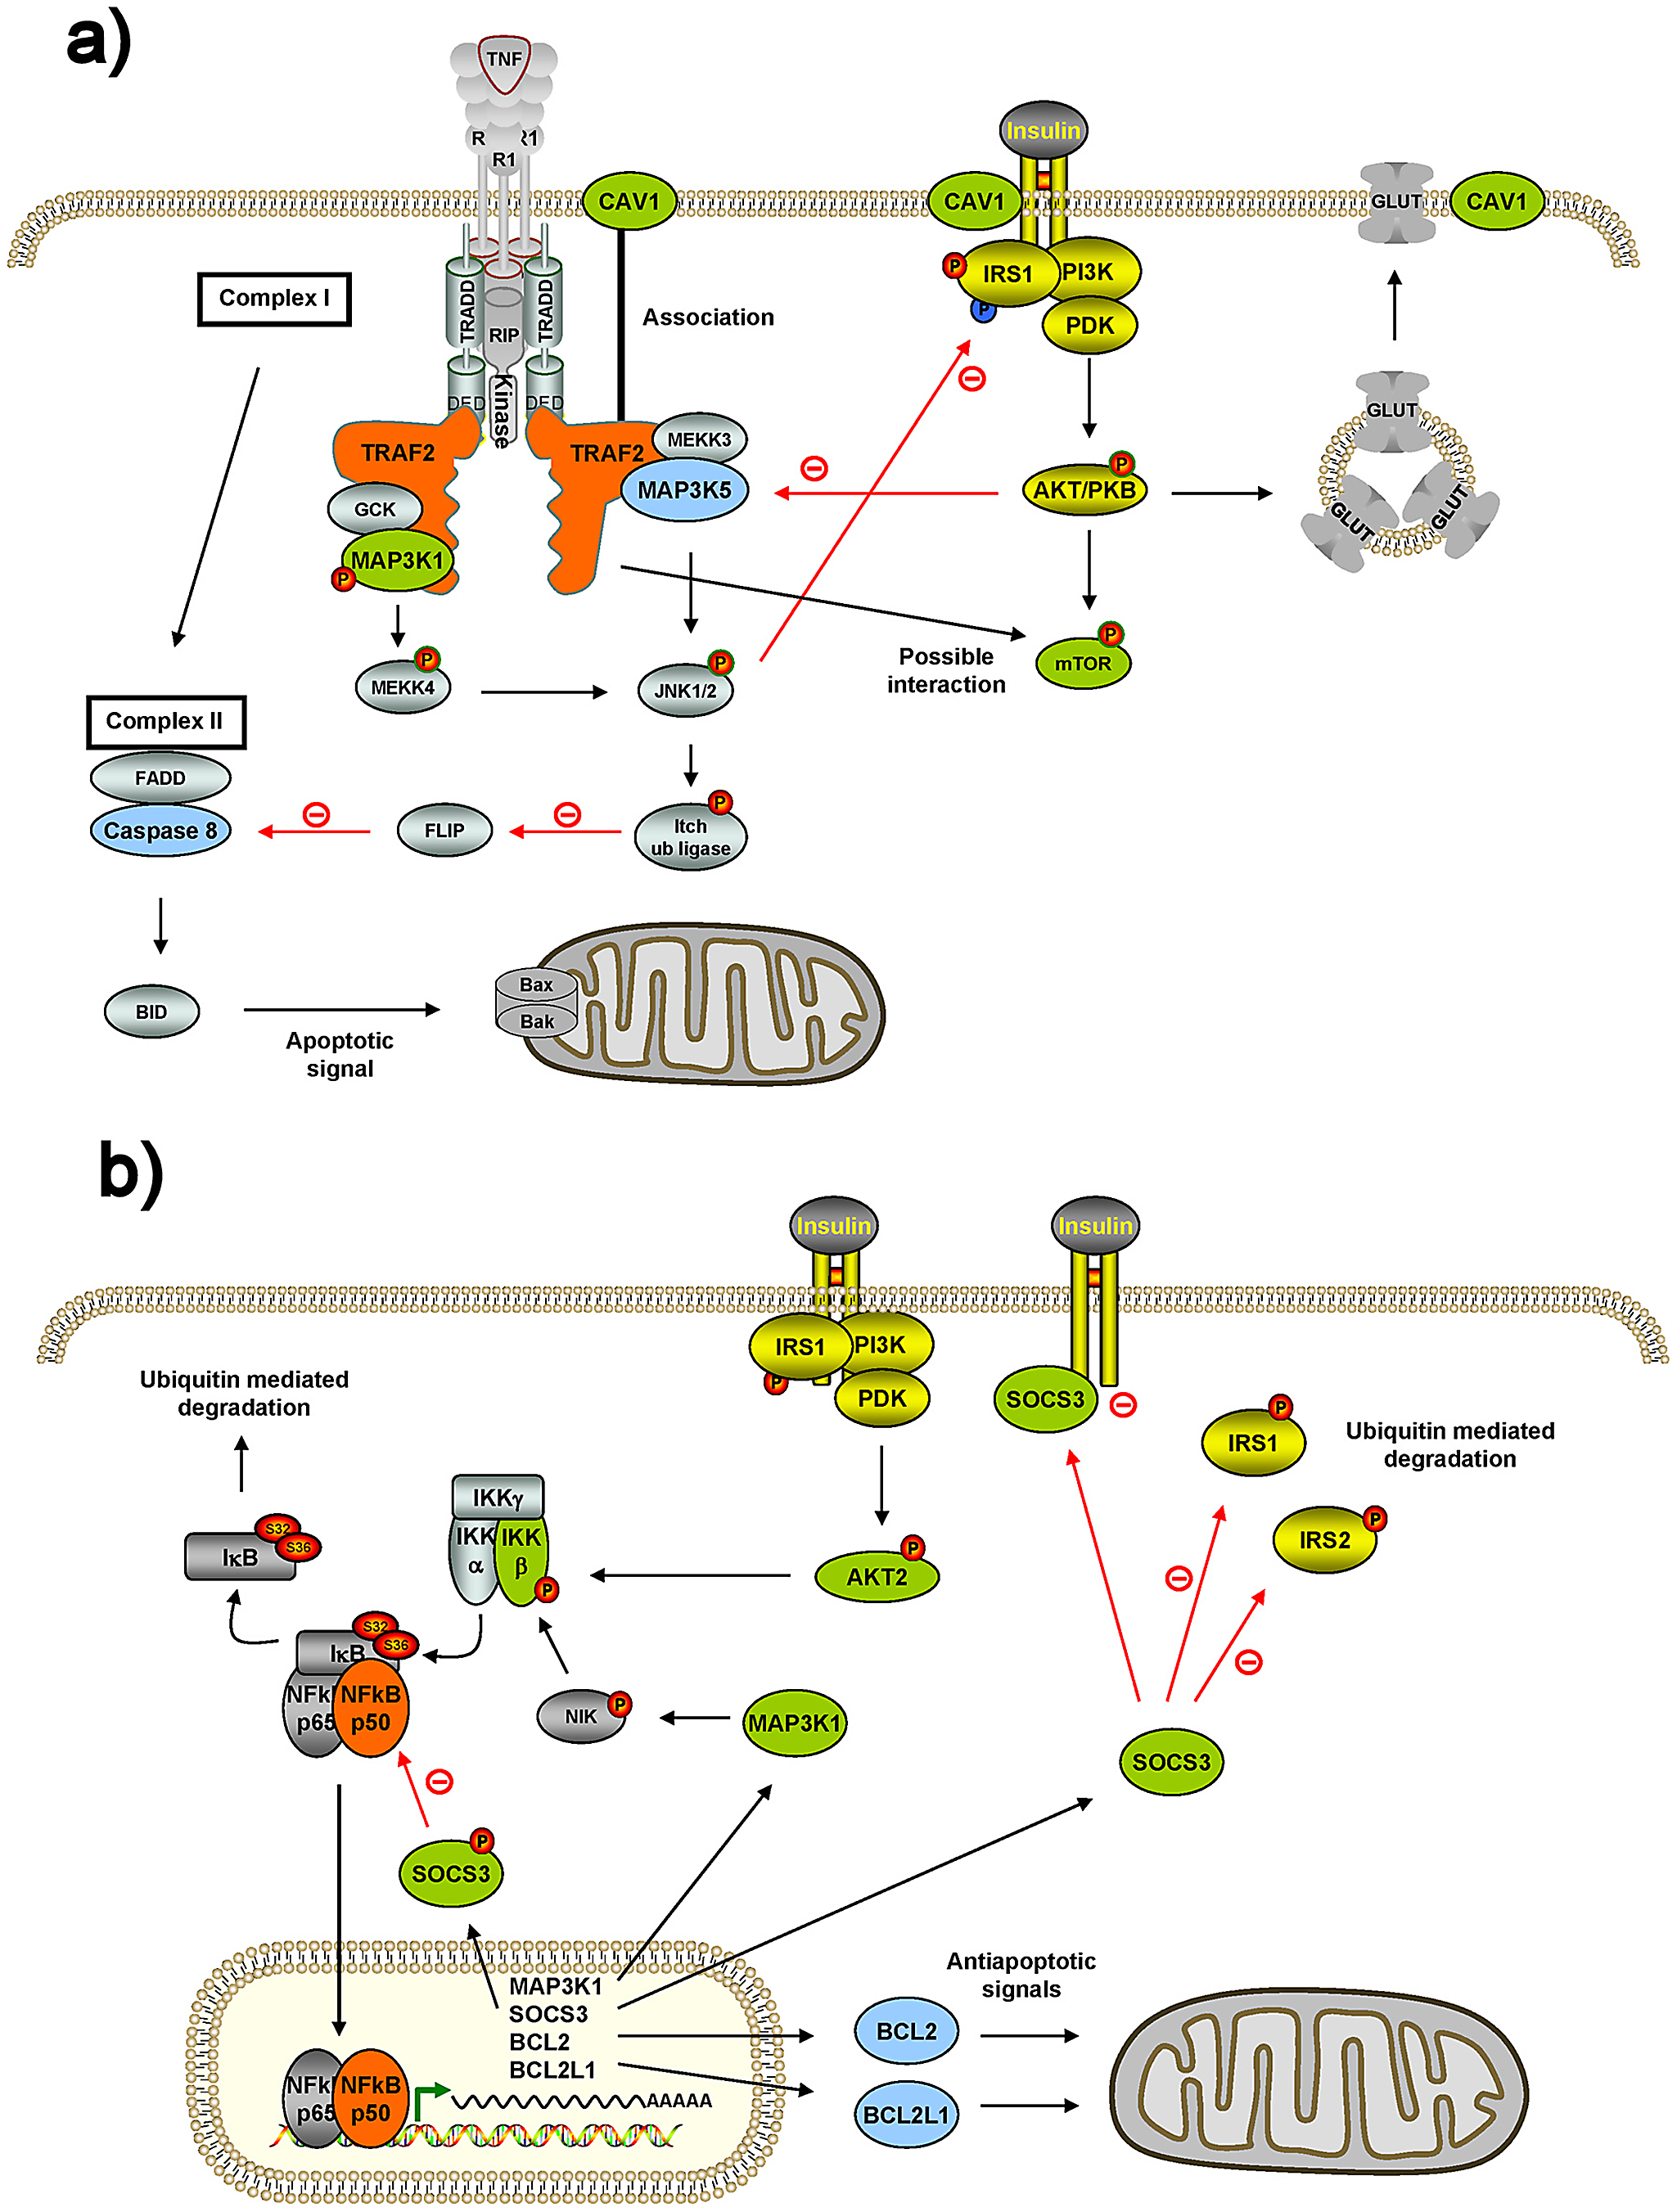 Connections of two internode genes, TRAF2 and NFKB1, with insulin genes and mitochondria genes.